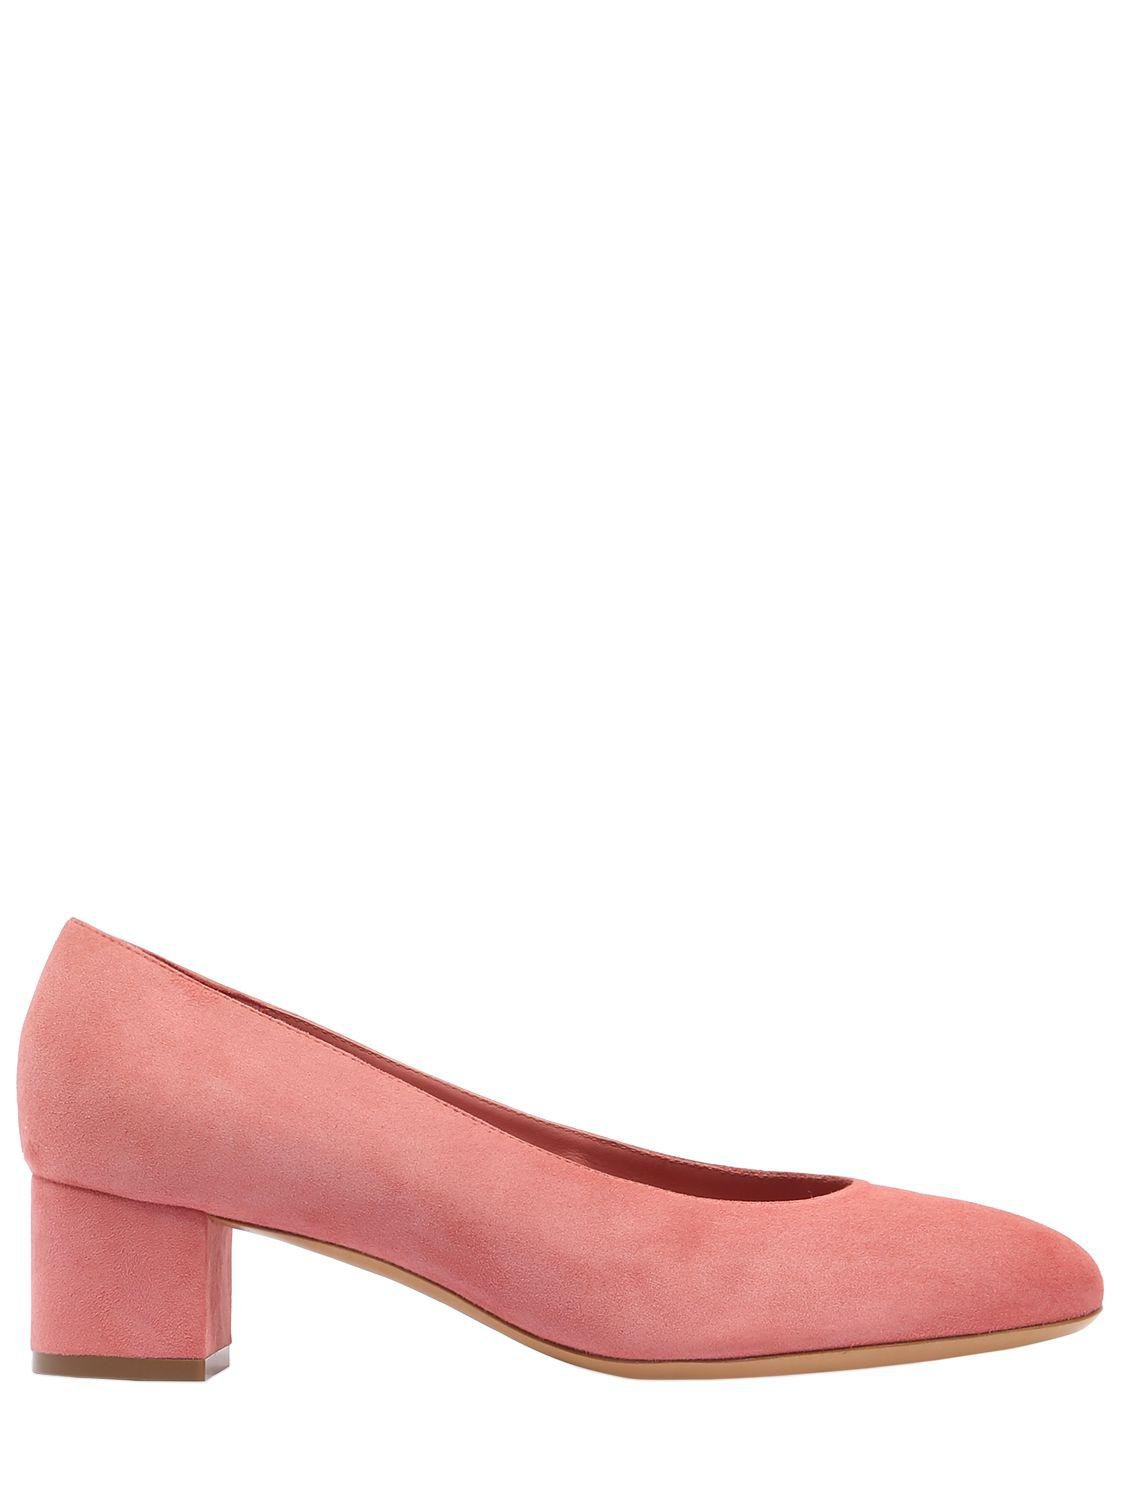 Low Price Sale Online Hot Mansur Gavriel 40MM BALLERINA SUEDE PUMPS Free Shipping Footaction Best Prices Cheap Price Clearance Online Ebay Hx20HrzgO